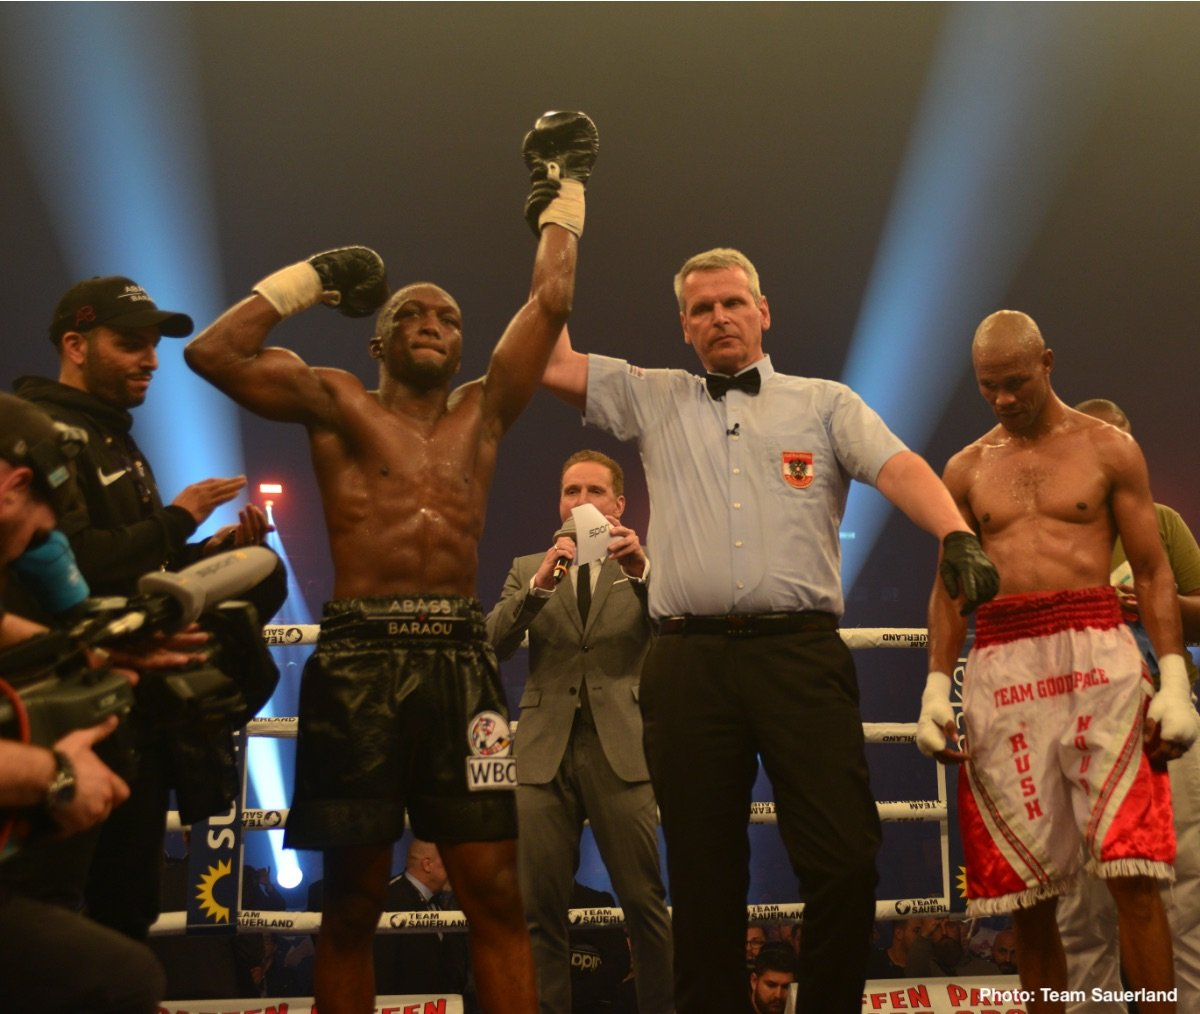 Abass Baraou - Boxing Results